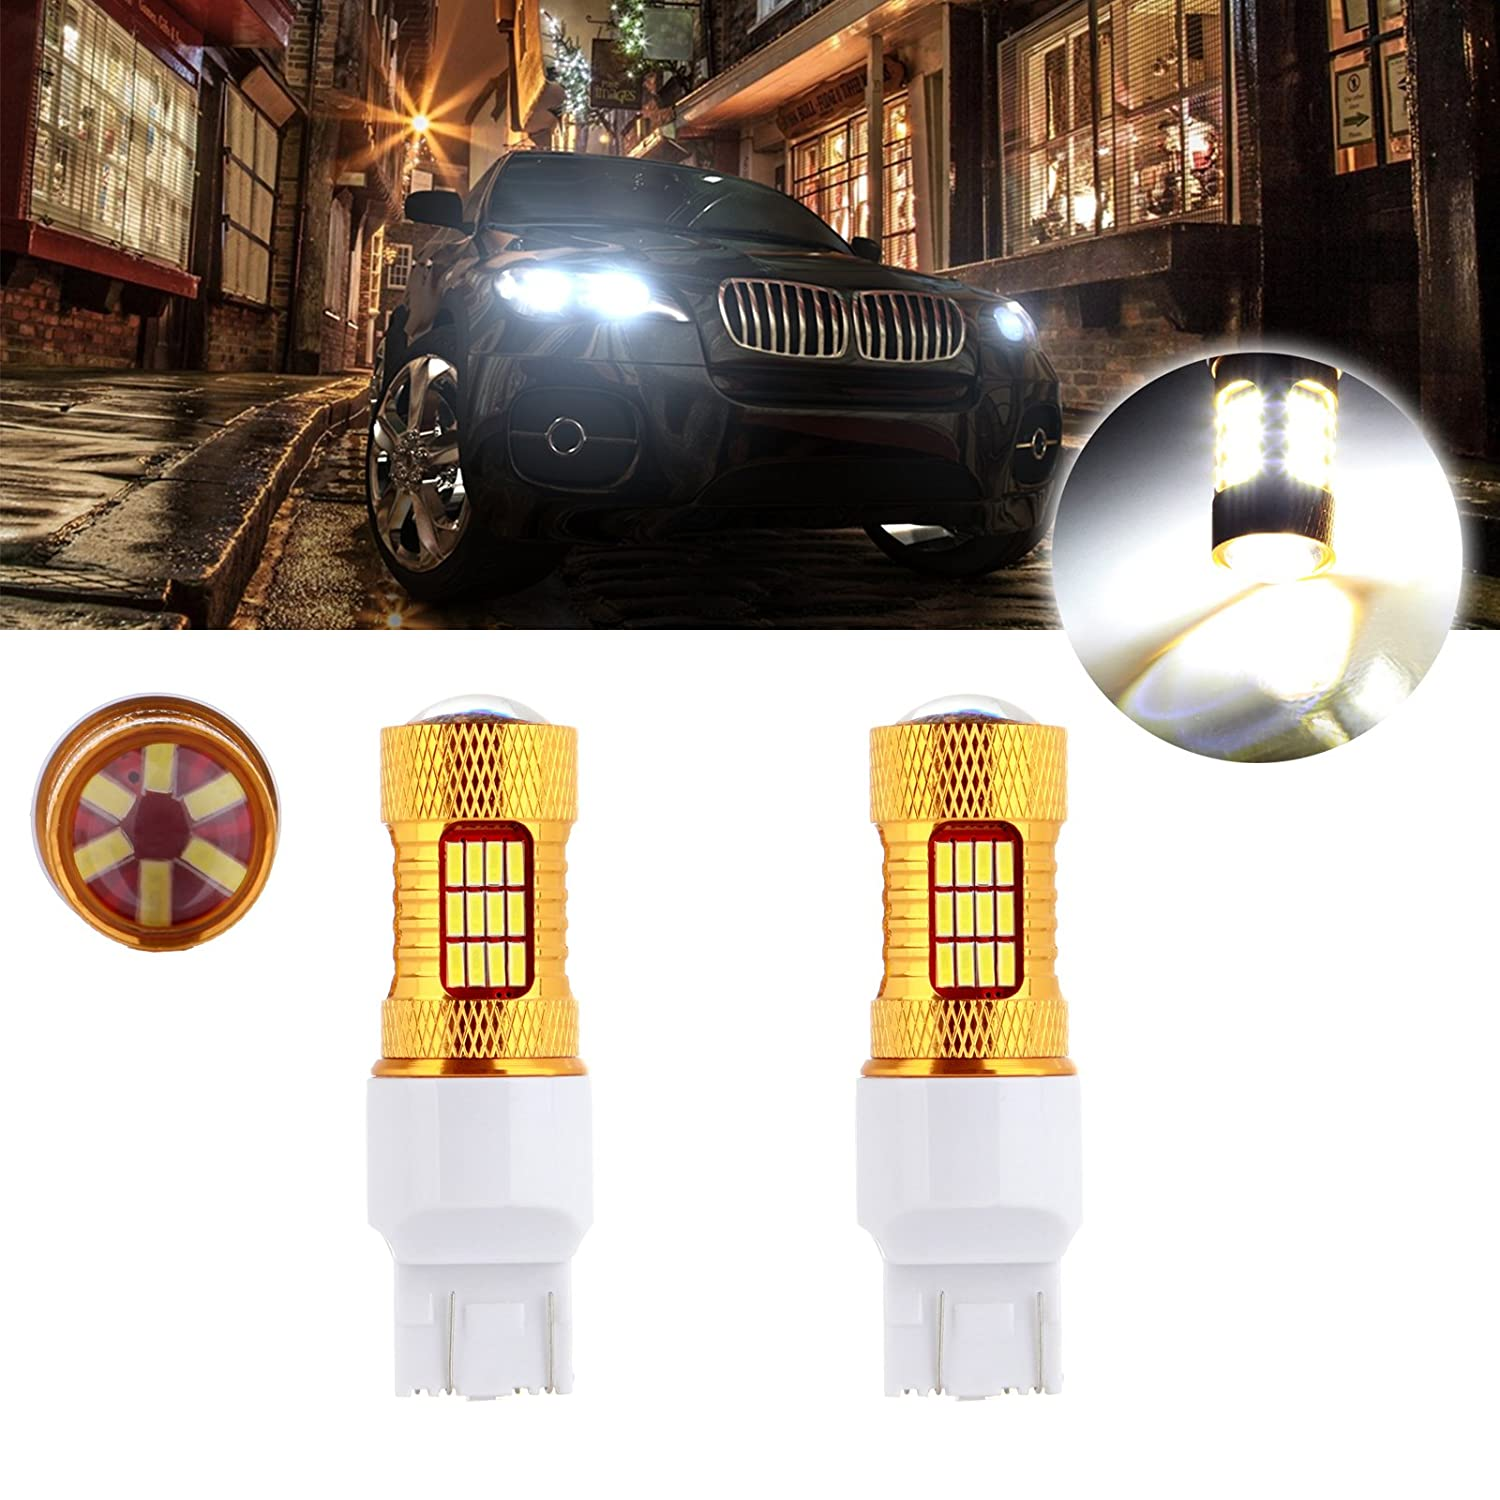 cciyu 7443 60W Xenon White Cree LED 54 4014 SMD Bulb Replacement fit for Reverse Backup Light,2 Pack